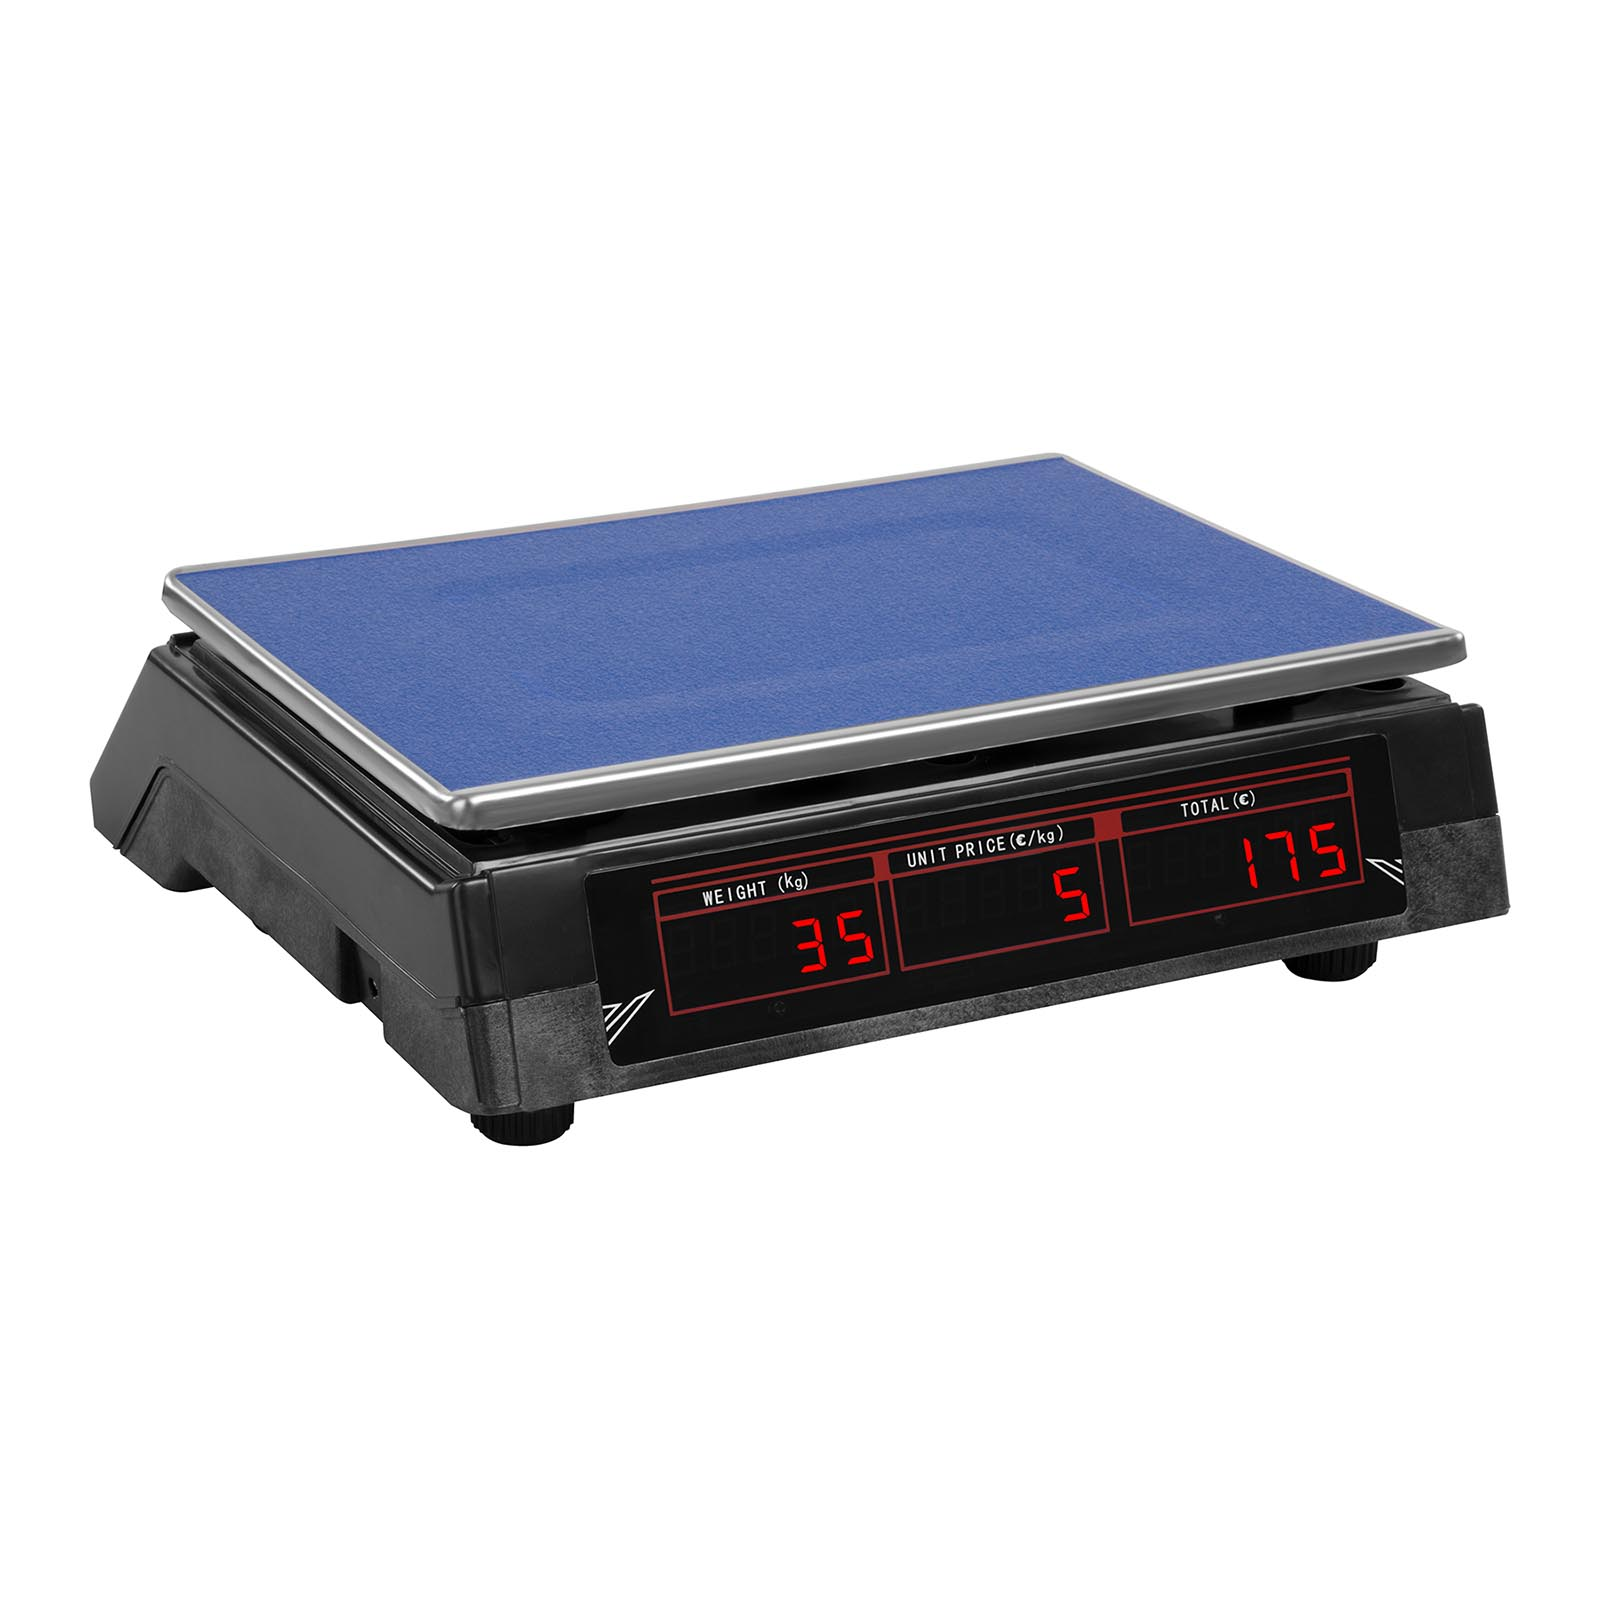 Steinberg Systems SBS-PW-302B Price Scale 30 kg // 2 g, Black, LED